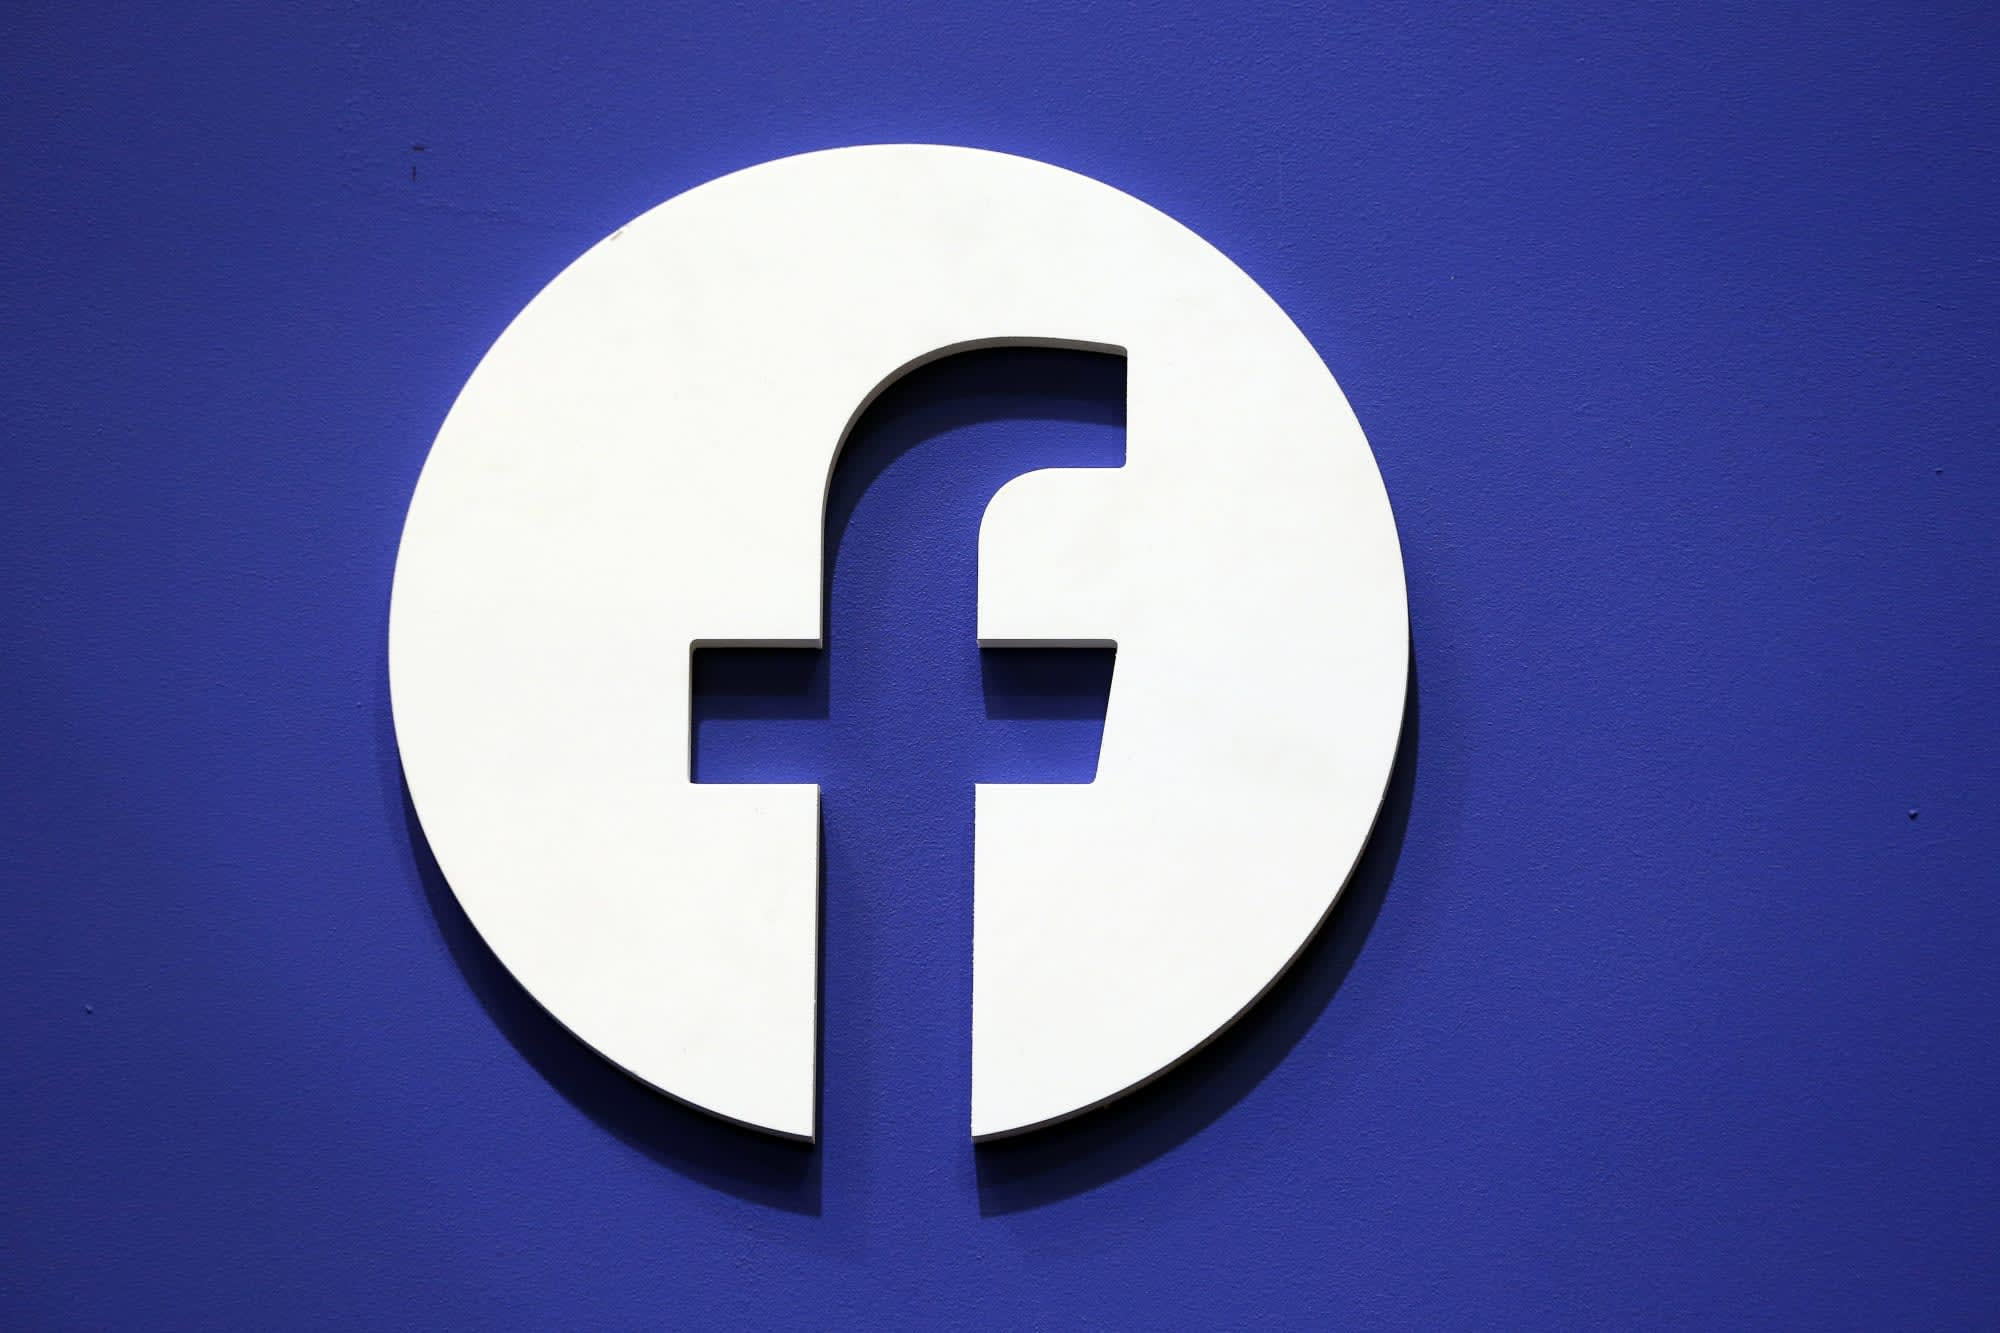 Facebook tweaks News Feed to focus on close friends and relevant links